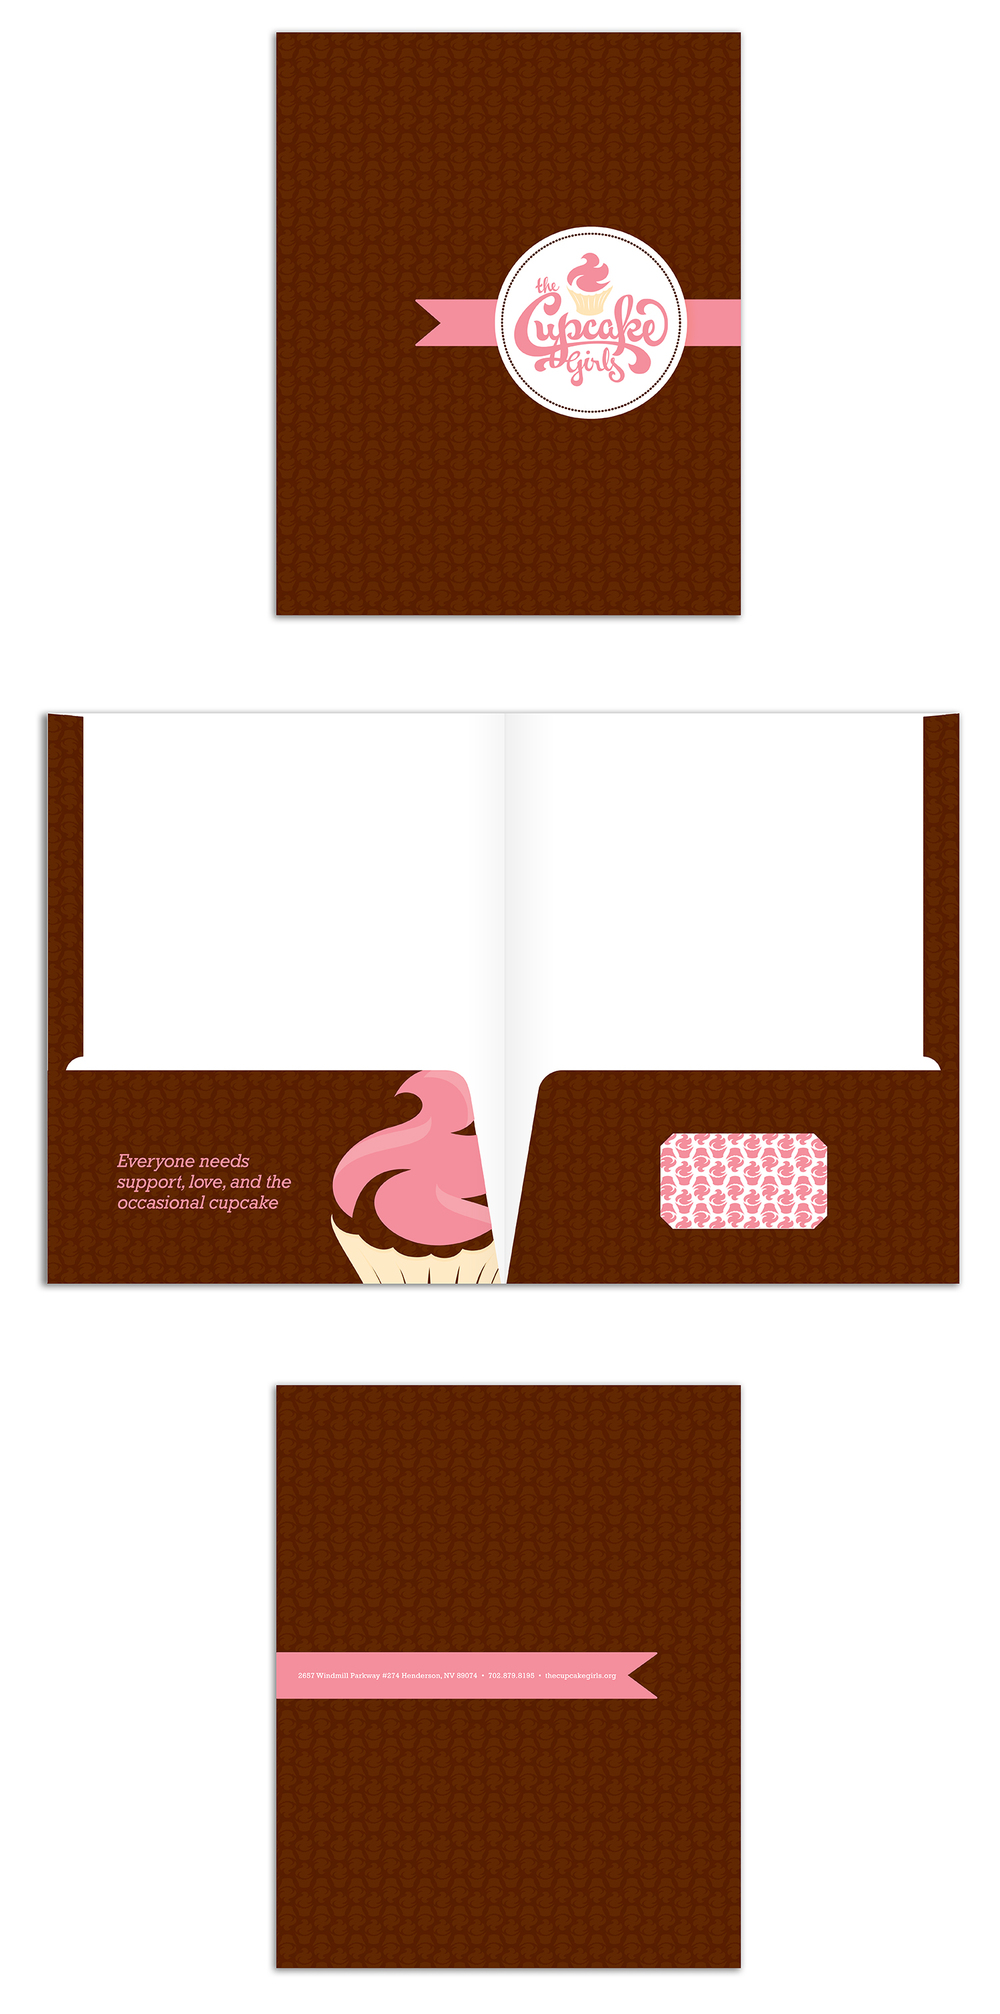 Cupcake Girls Full Color Folder mockup-1.jpg